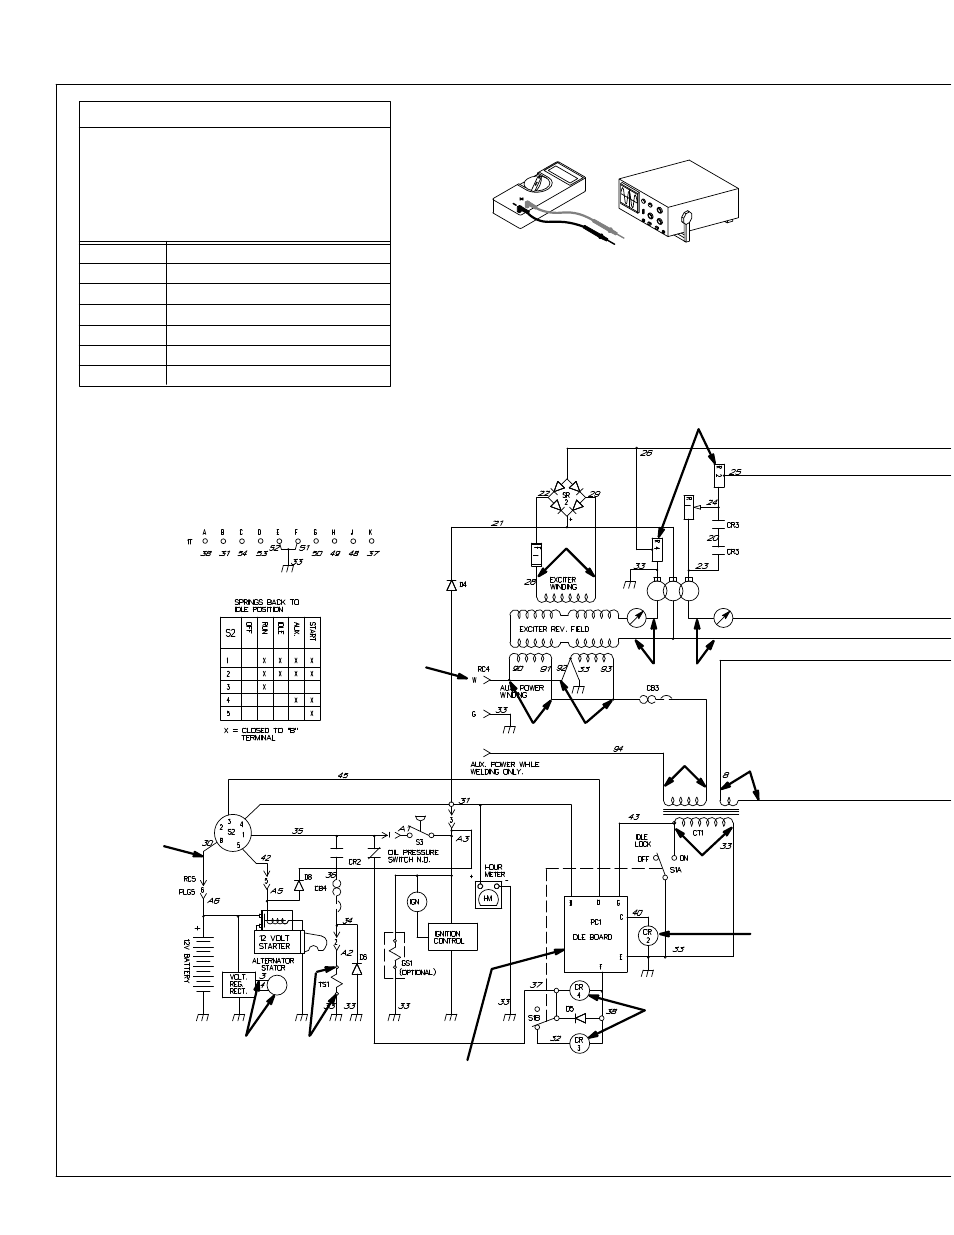 Rockford Fosgate Amp Wiring Kit Punch Diagram